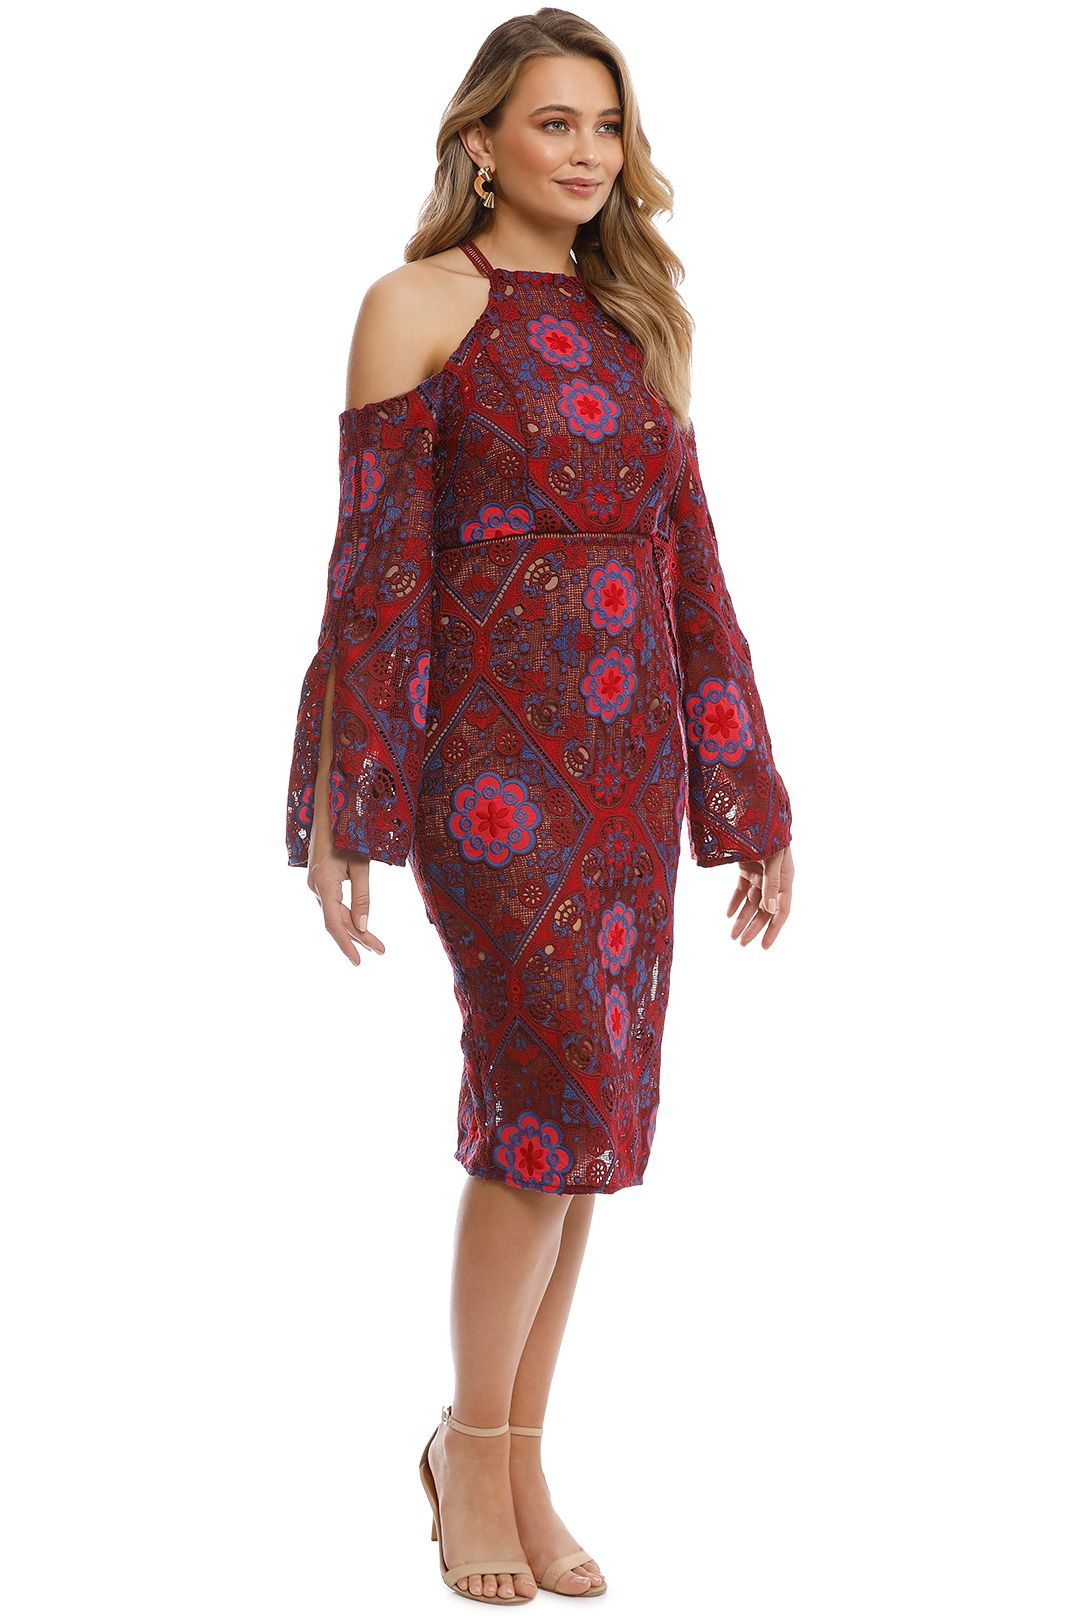 Elliatt - Renaissance Dress - Red Floral - Side